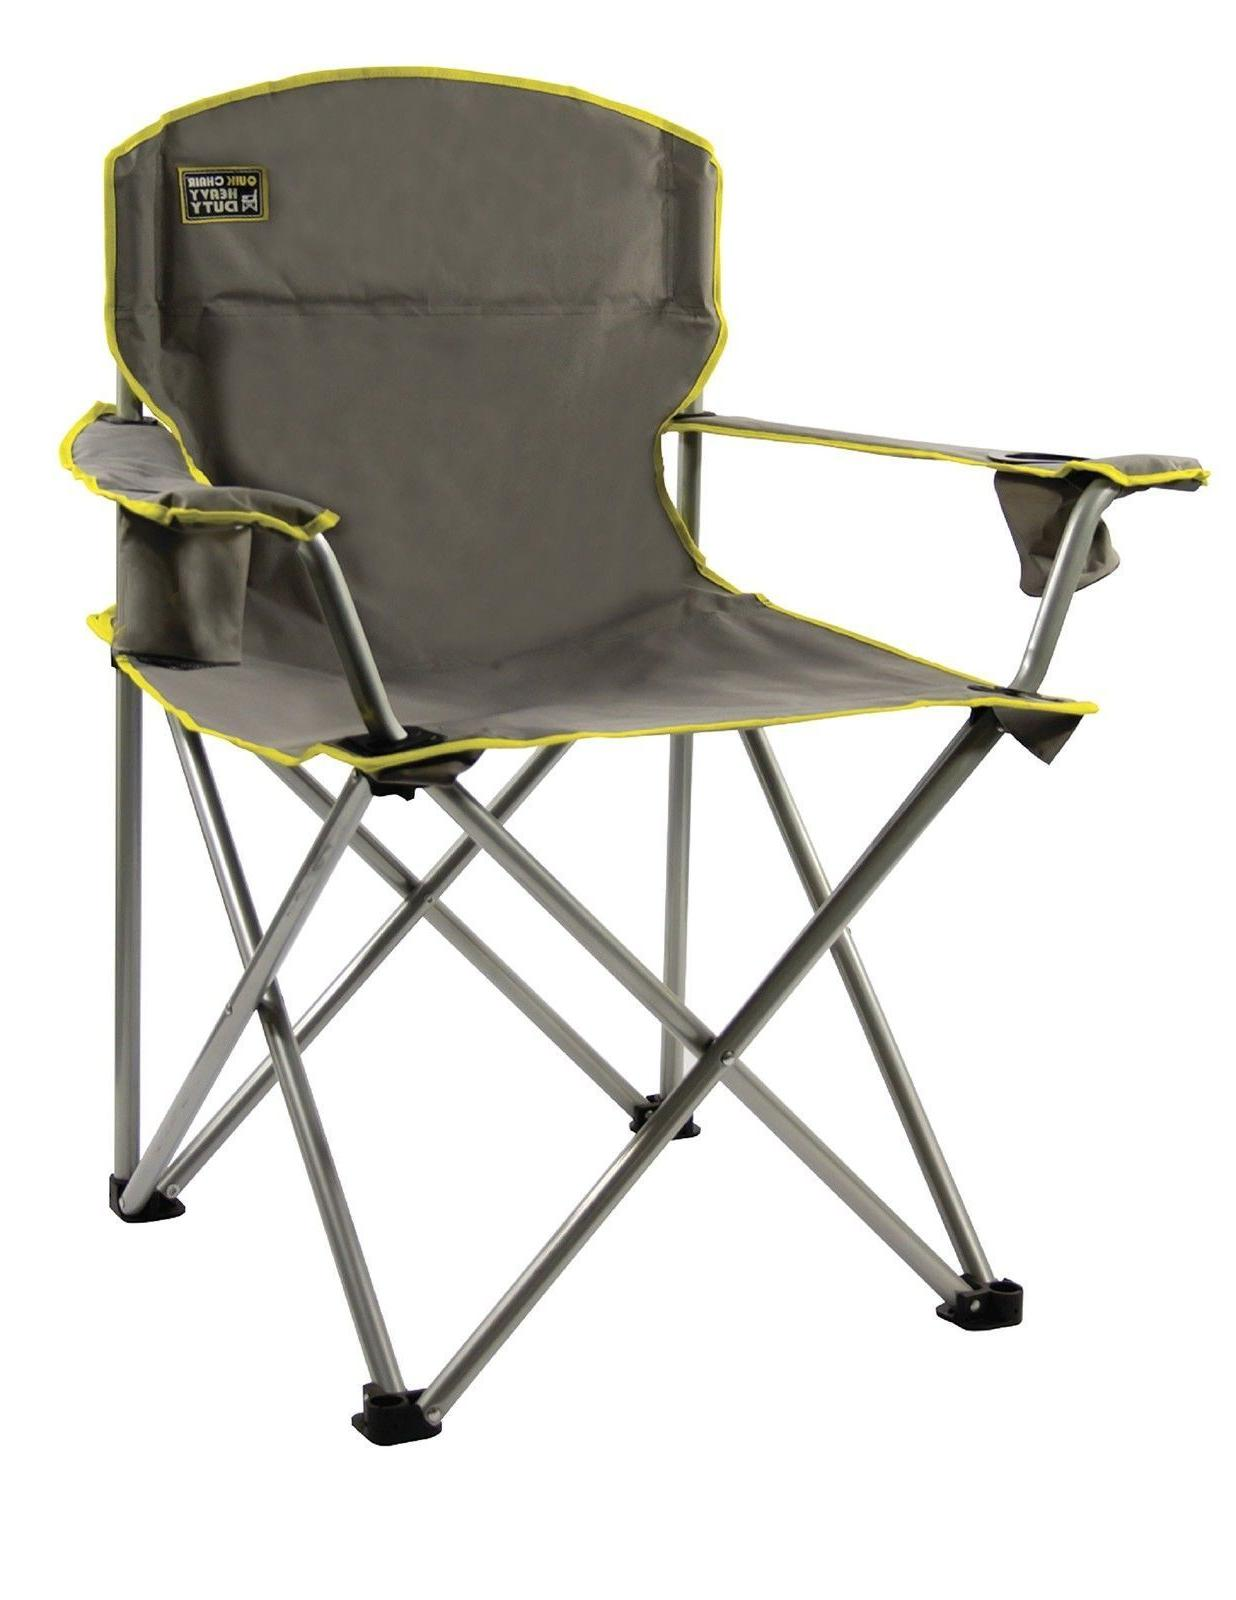 Heavy Folding Chair Outdoor Portable Seat 500LBS Oversized